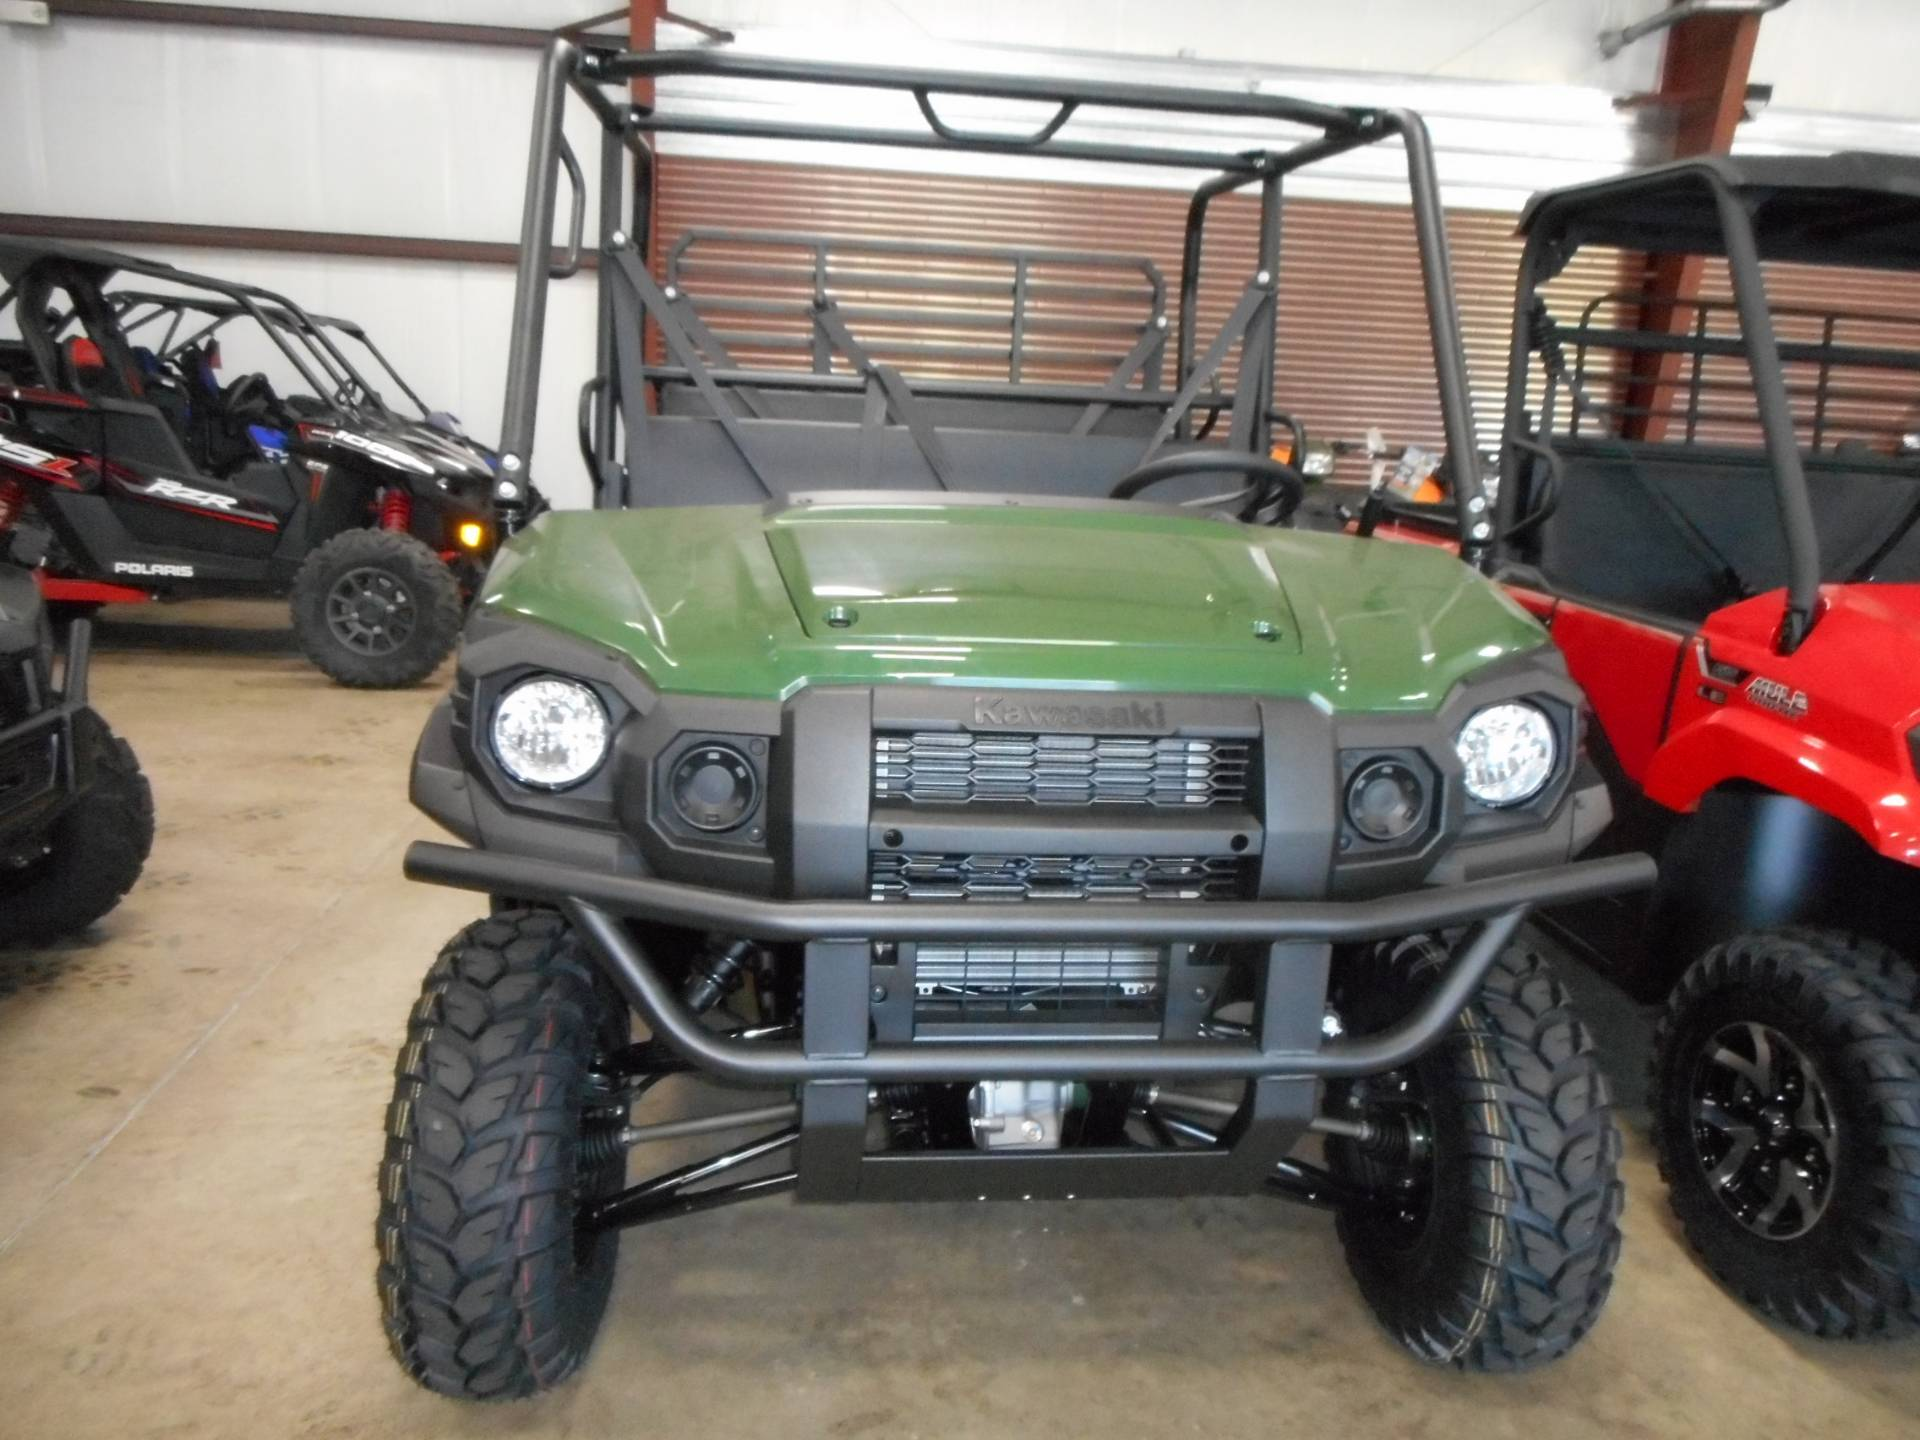 2020 Kawasaki Mule PRO-FXT EPS in Belvidere, Illinois - Photo 3